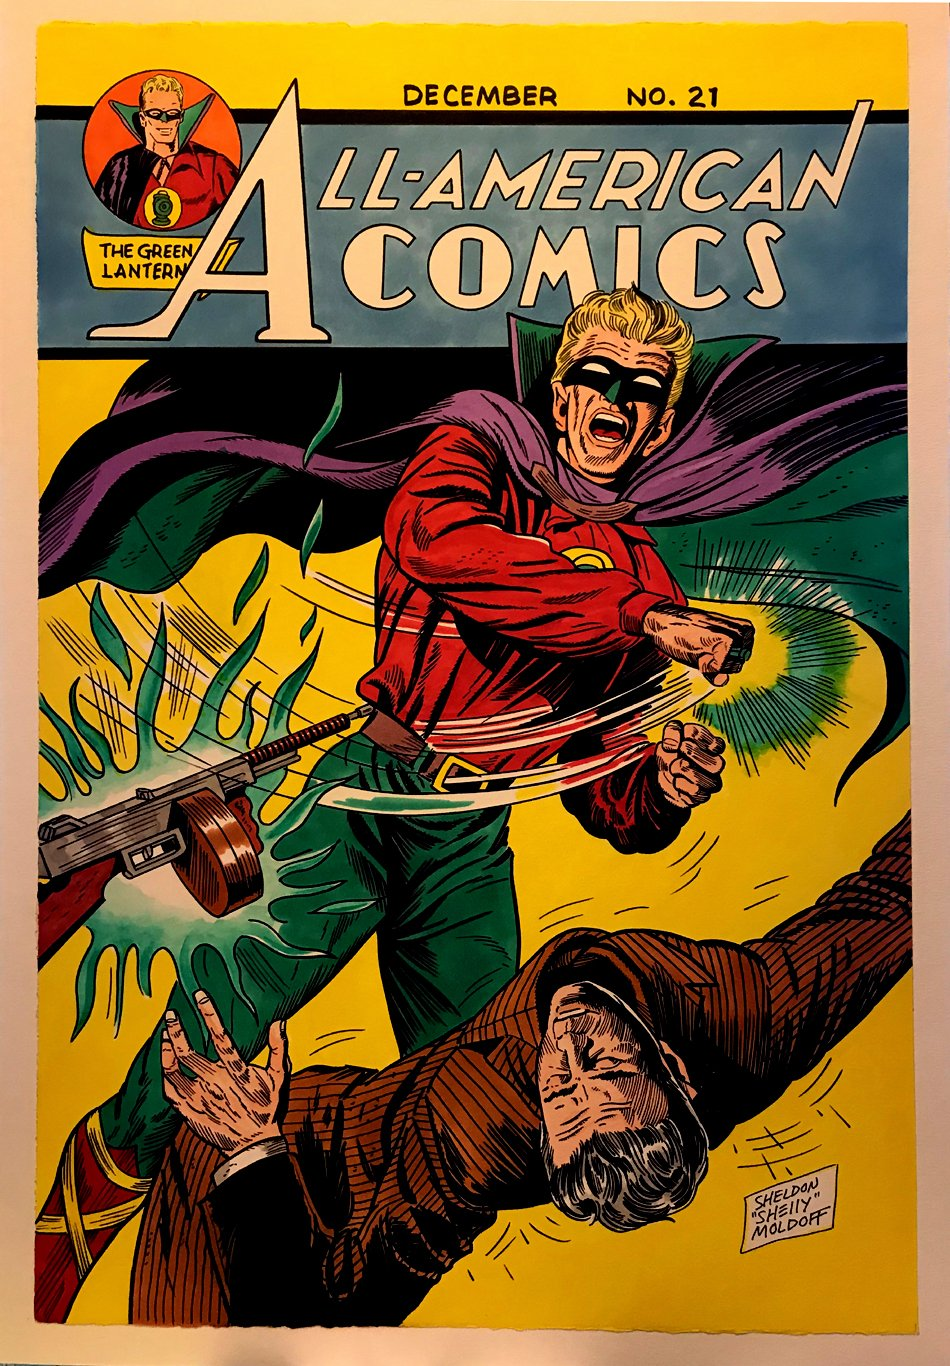 All-American Comics #21 Cover Recreation (1990s)